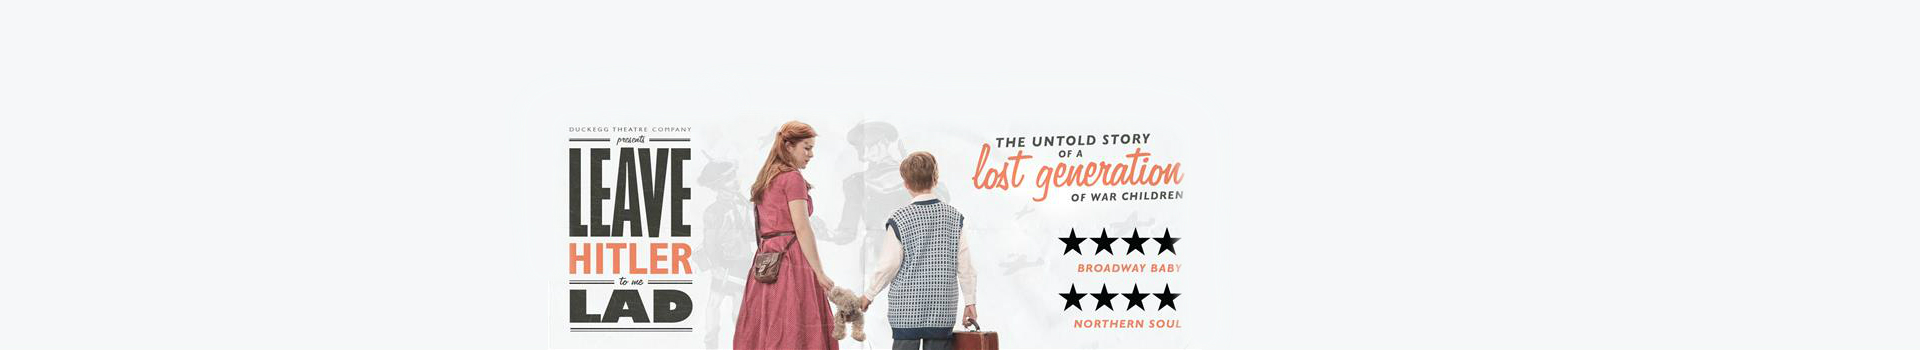 Leave Hitler To Me, Lad tickets London Arts Theatre